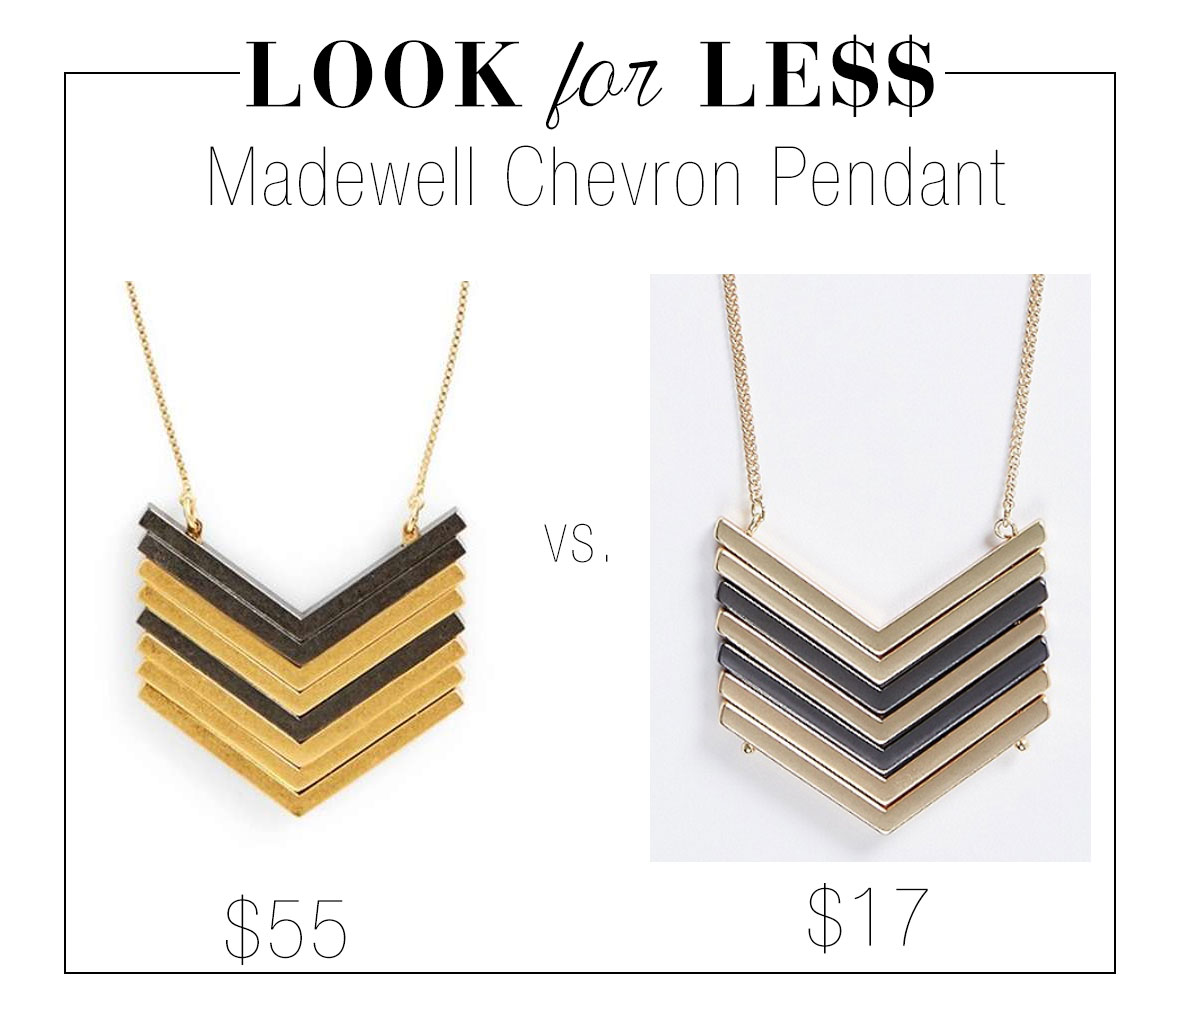 Madewell's chevron pendant goes with any fall look.